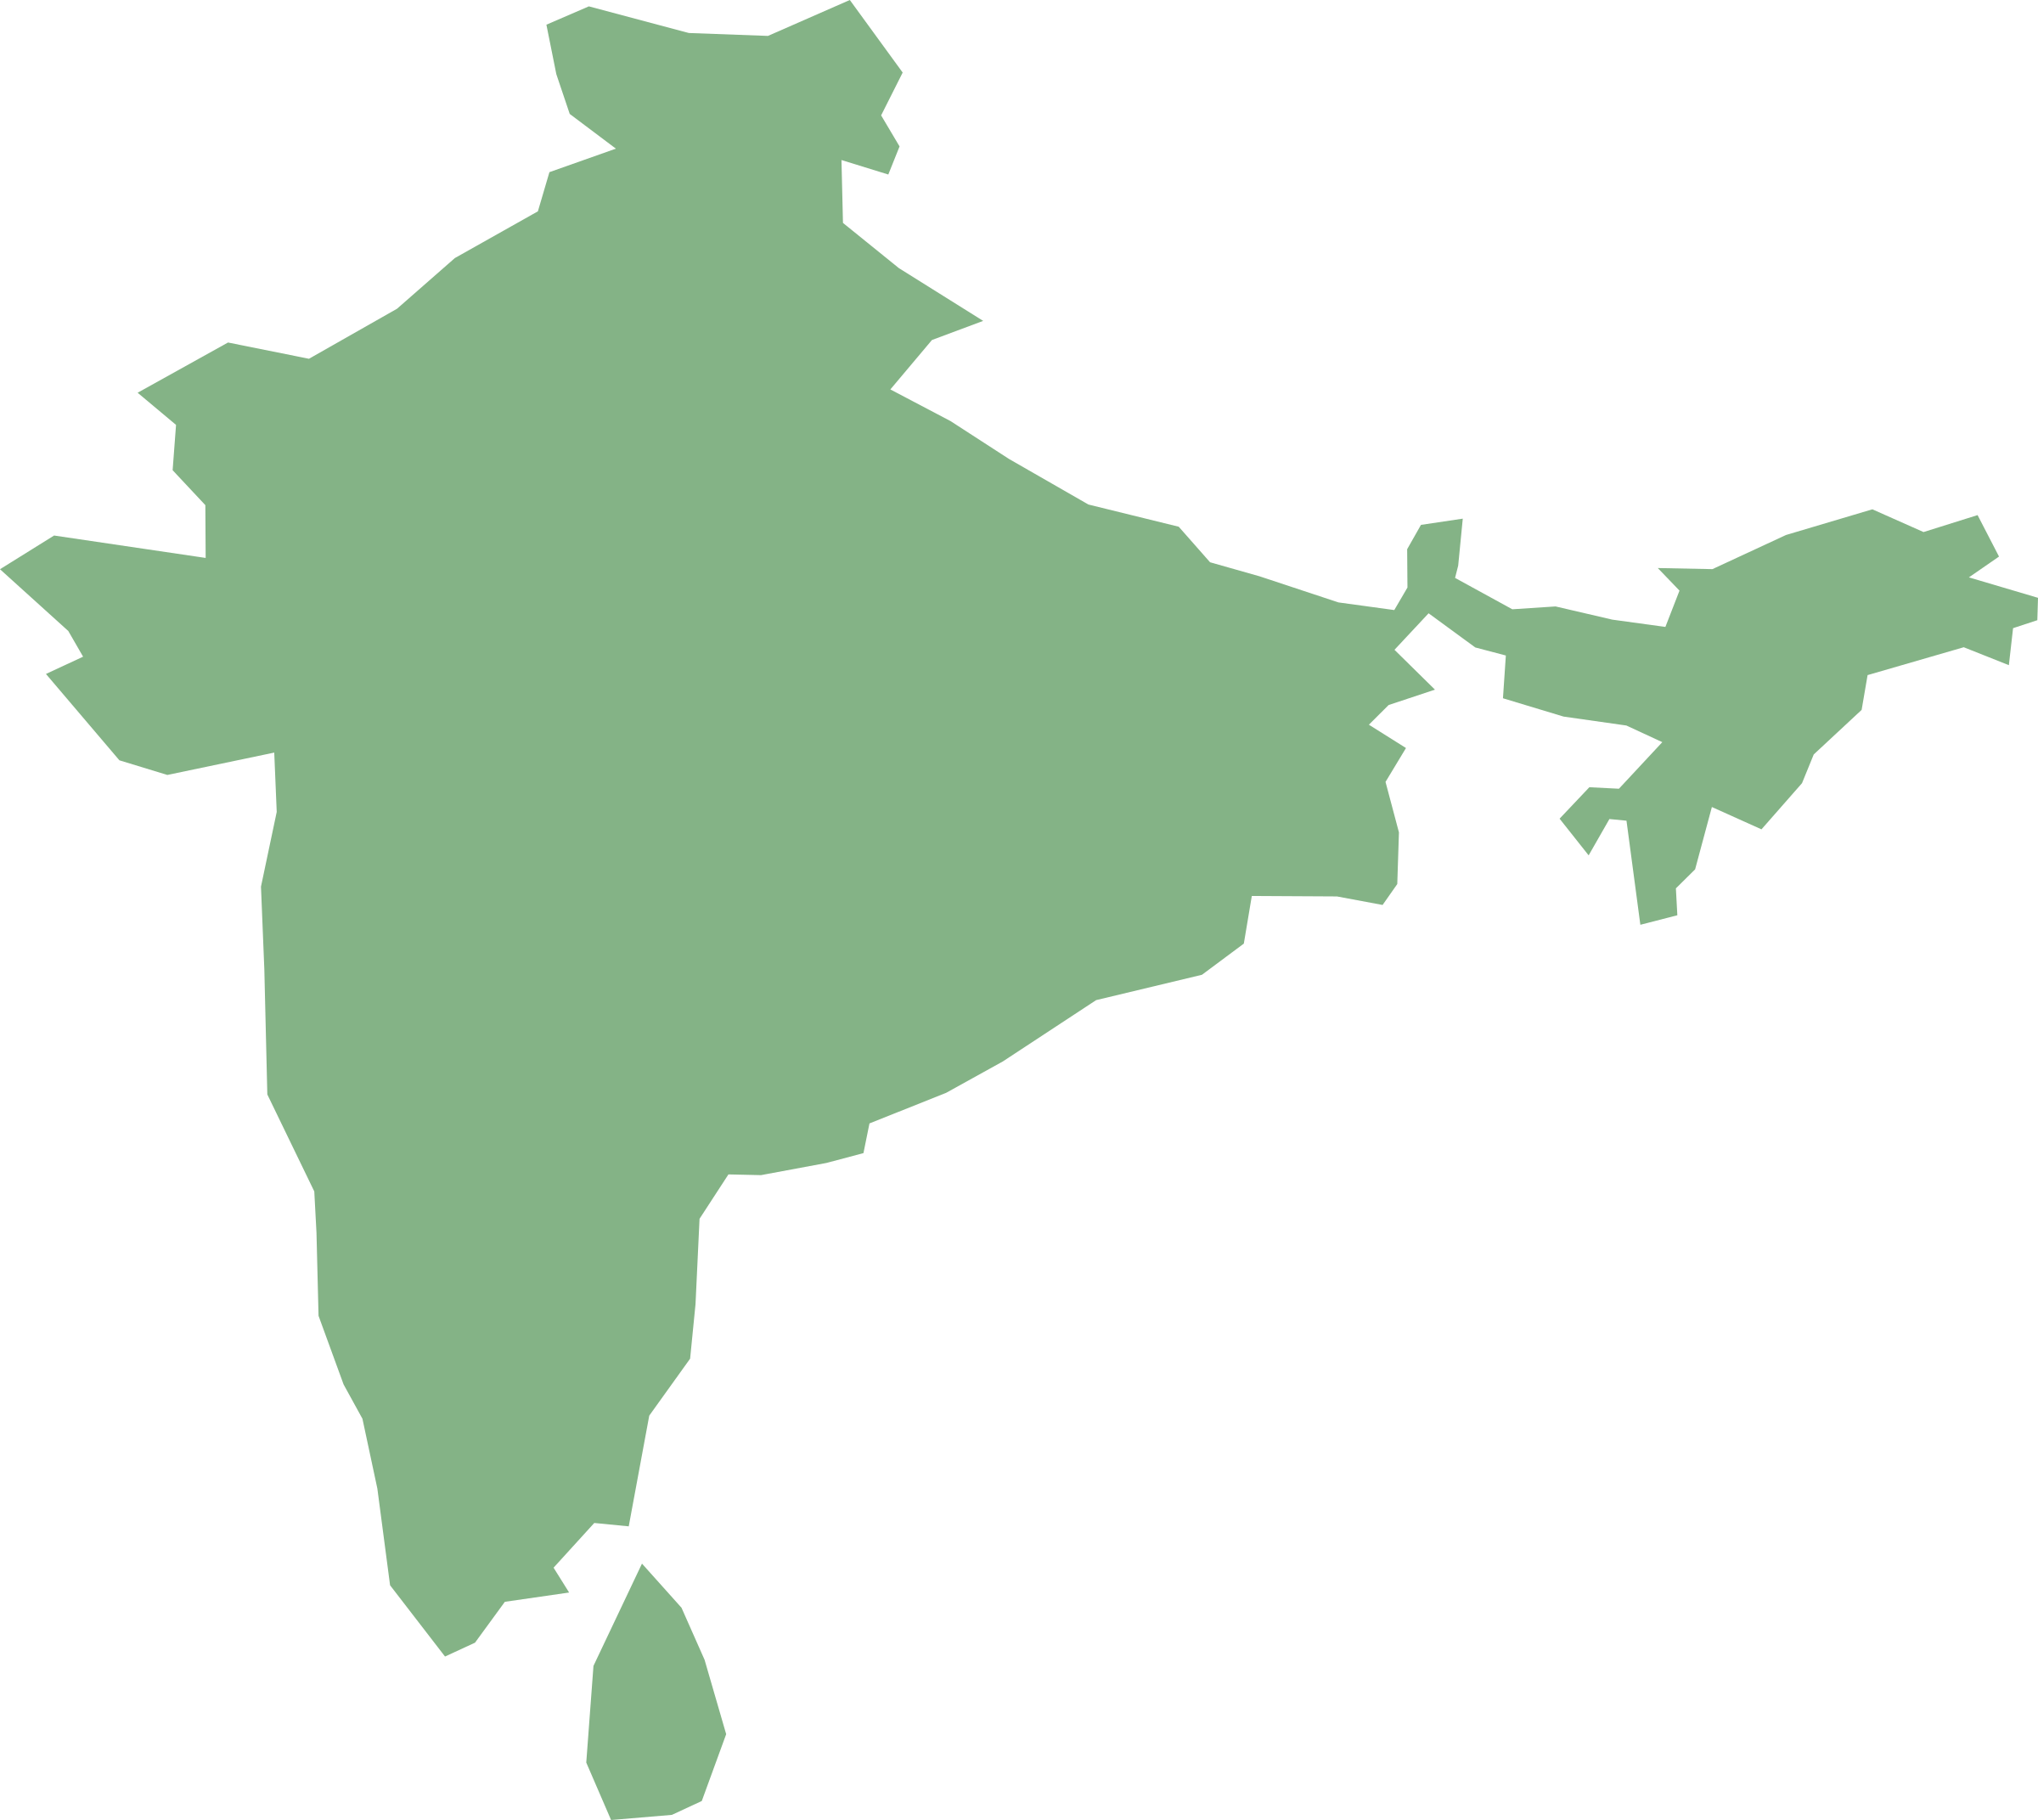 Map Of India And Sri Lanka In Cylindrical Equal Area Projection By